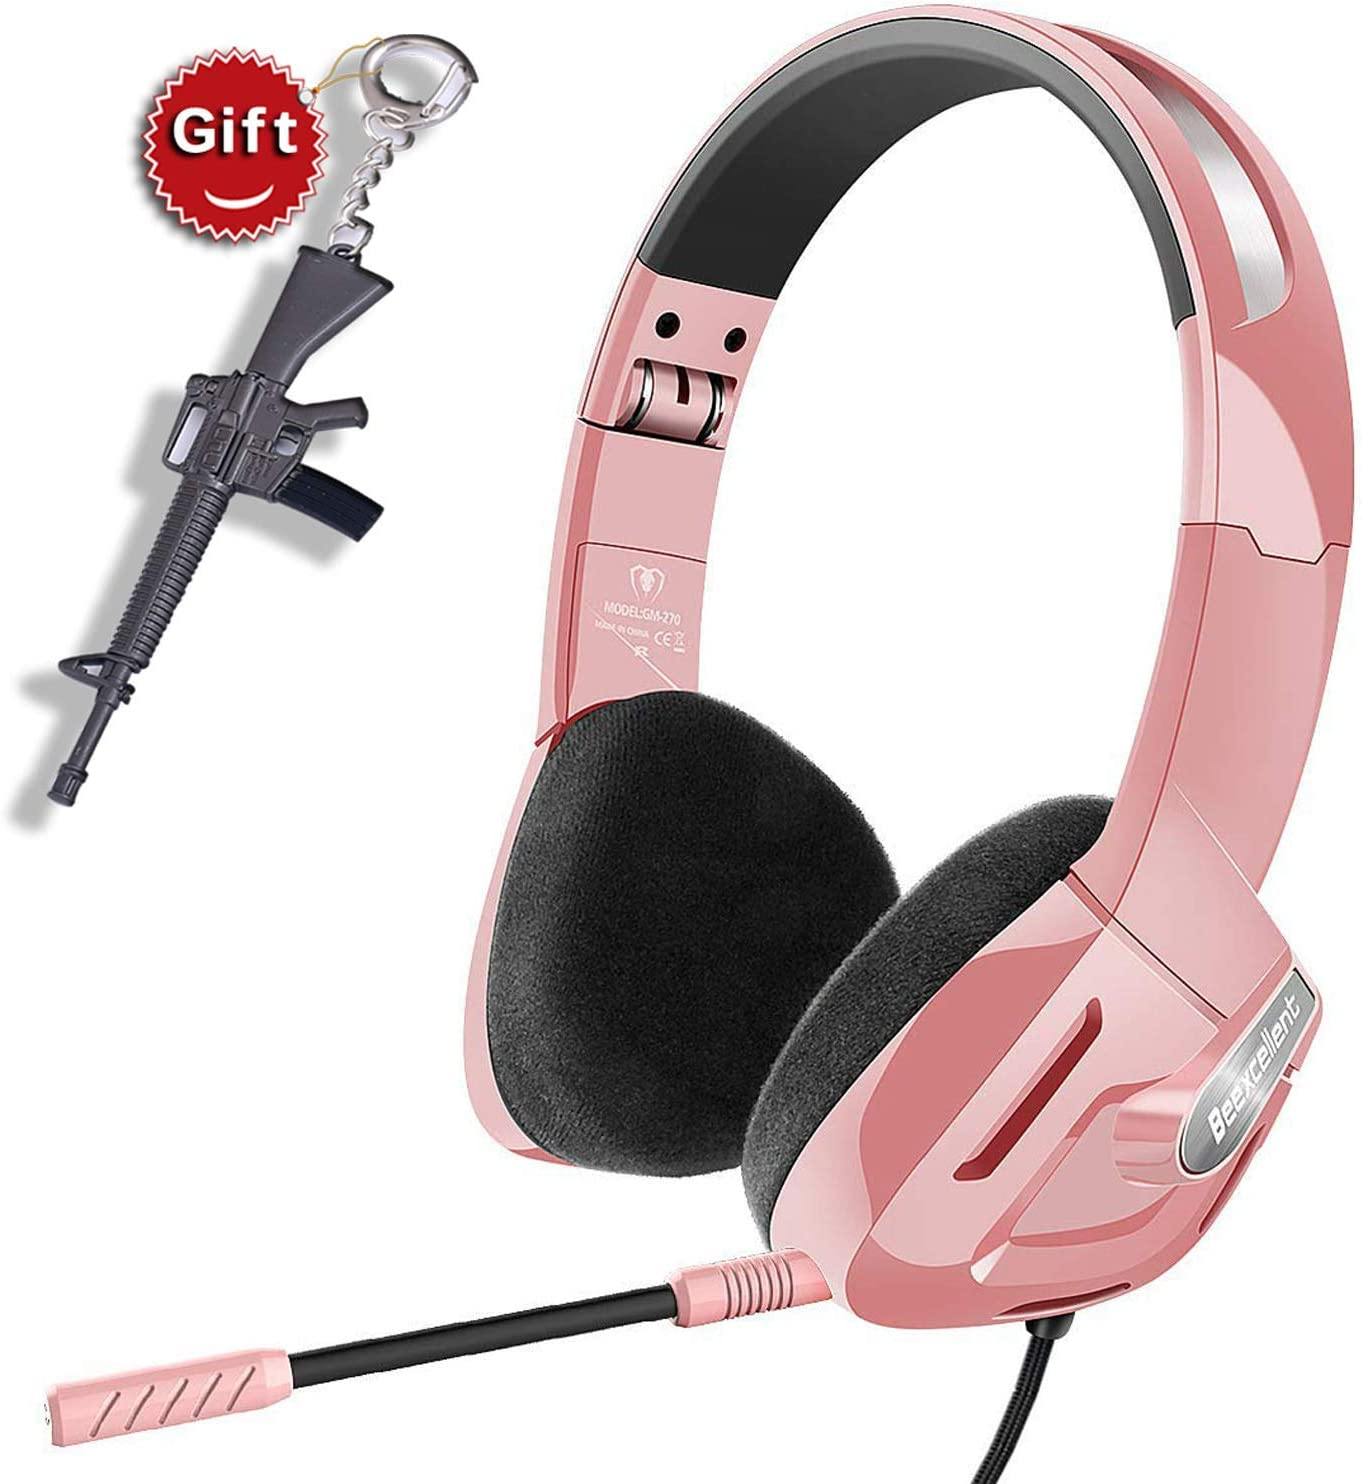 SVYHUOK Pink Gaming Headset for Girl, Women, Kids, PC, PS4, New Xbox One, Foldable On-Ear Headphone with Detachable Mic, Stereo 30MM Speaker Driver Unit Gift for Children, Teenager, Younger